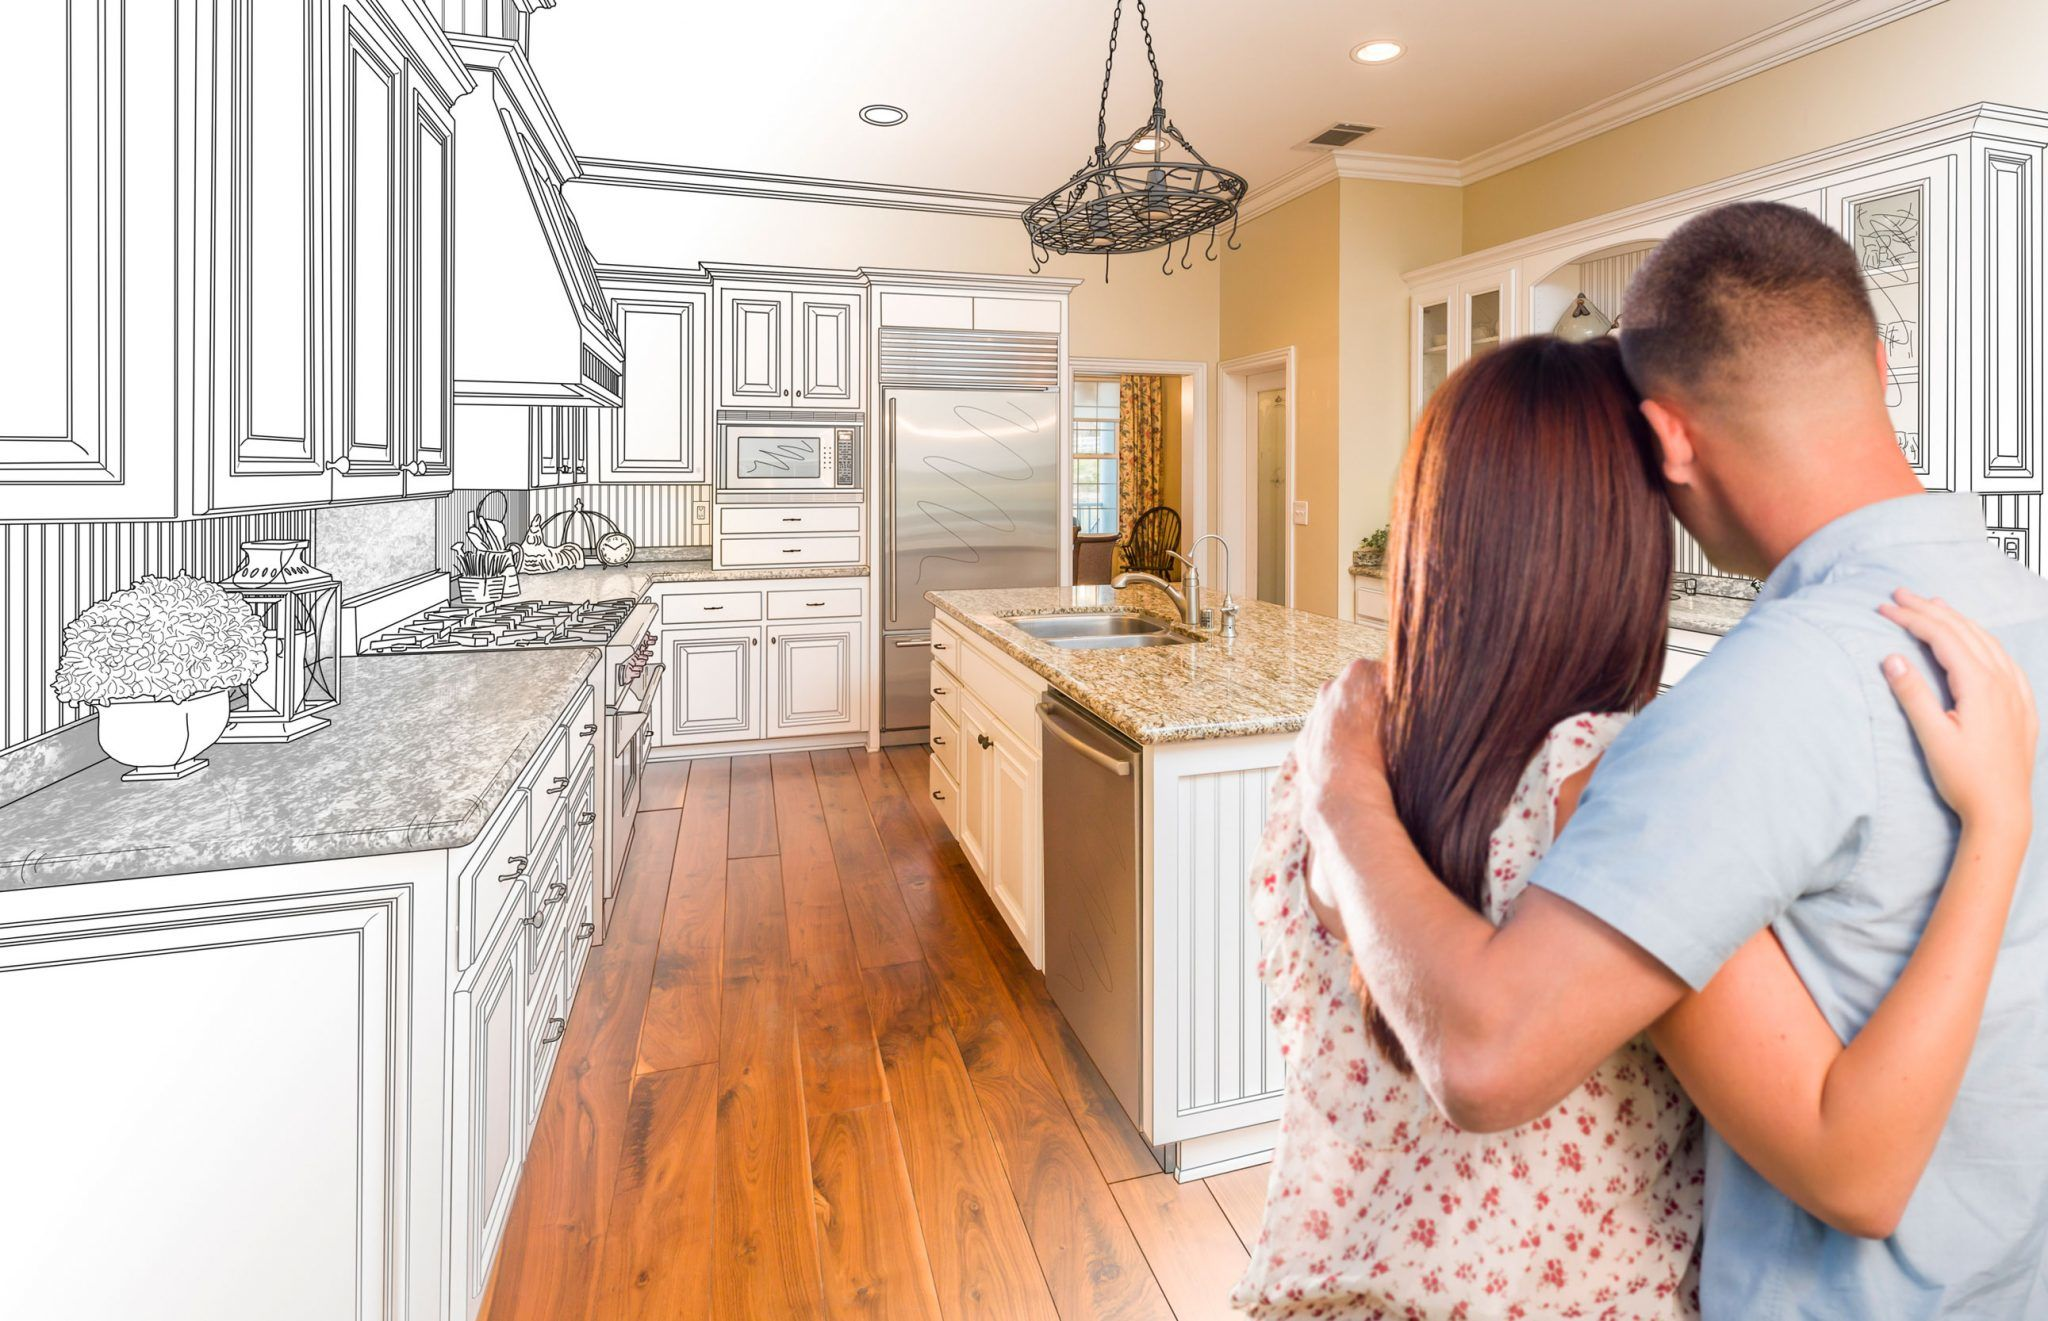 Couple-planning-their-ideal-home-remodel-through-financing